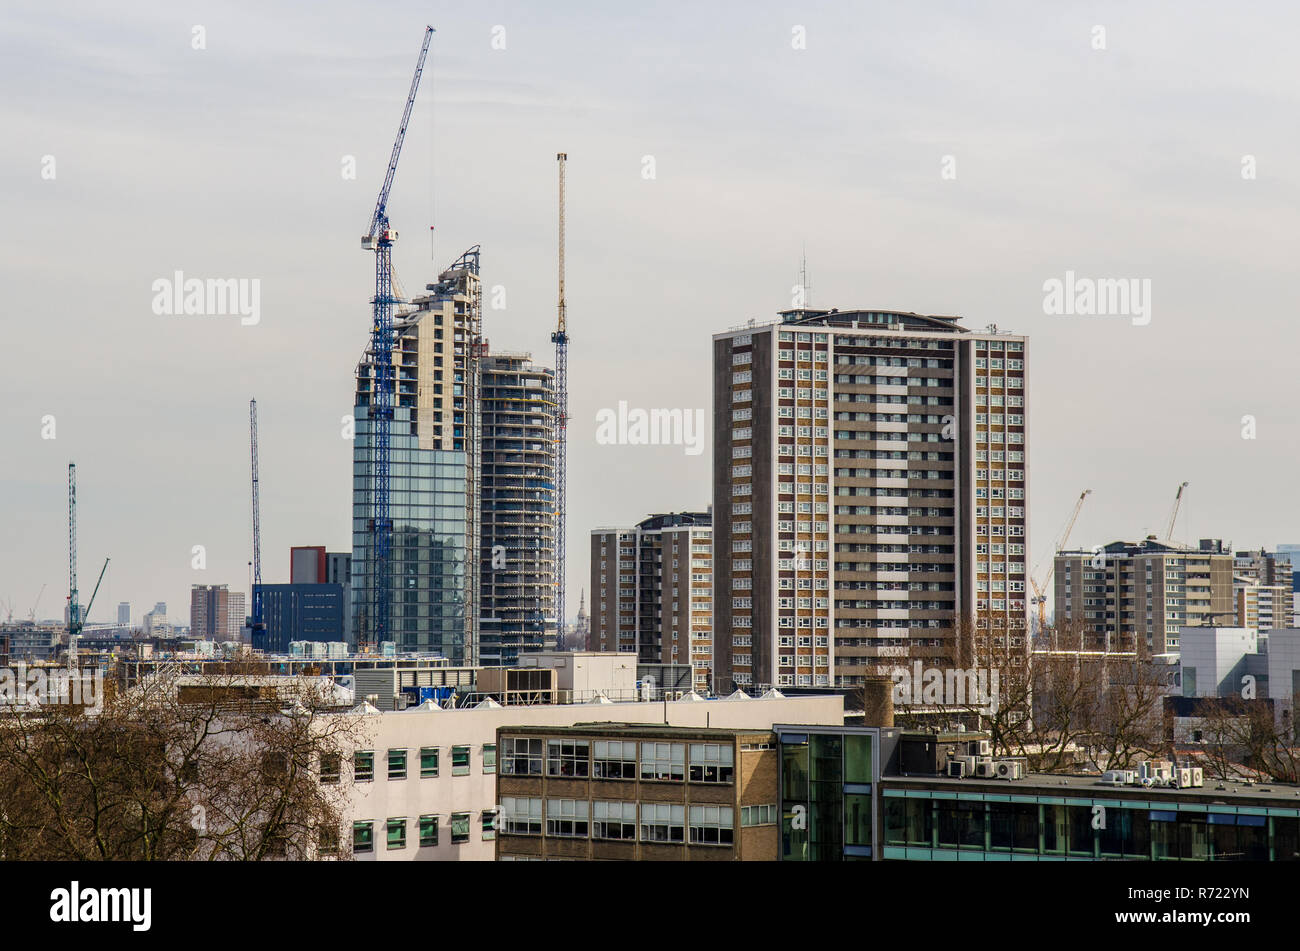 London, England, UK - March 13, 2015: Tower cranes stand over the construction sites of skyscrapers, part of a cluster of new-build high-rise apartmen - Stock Image